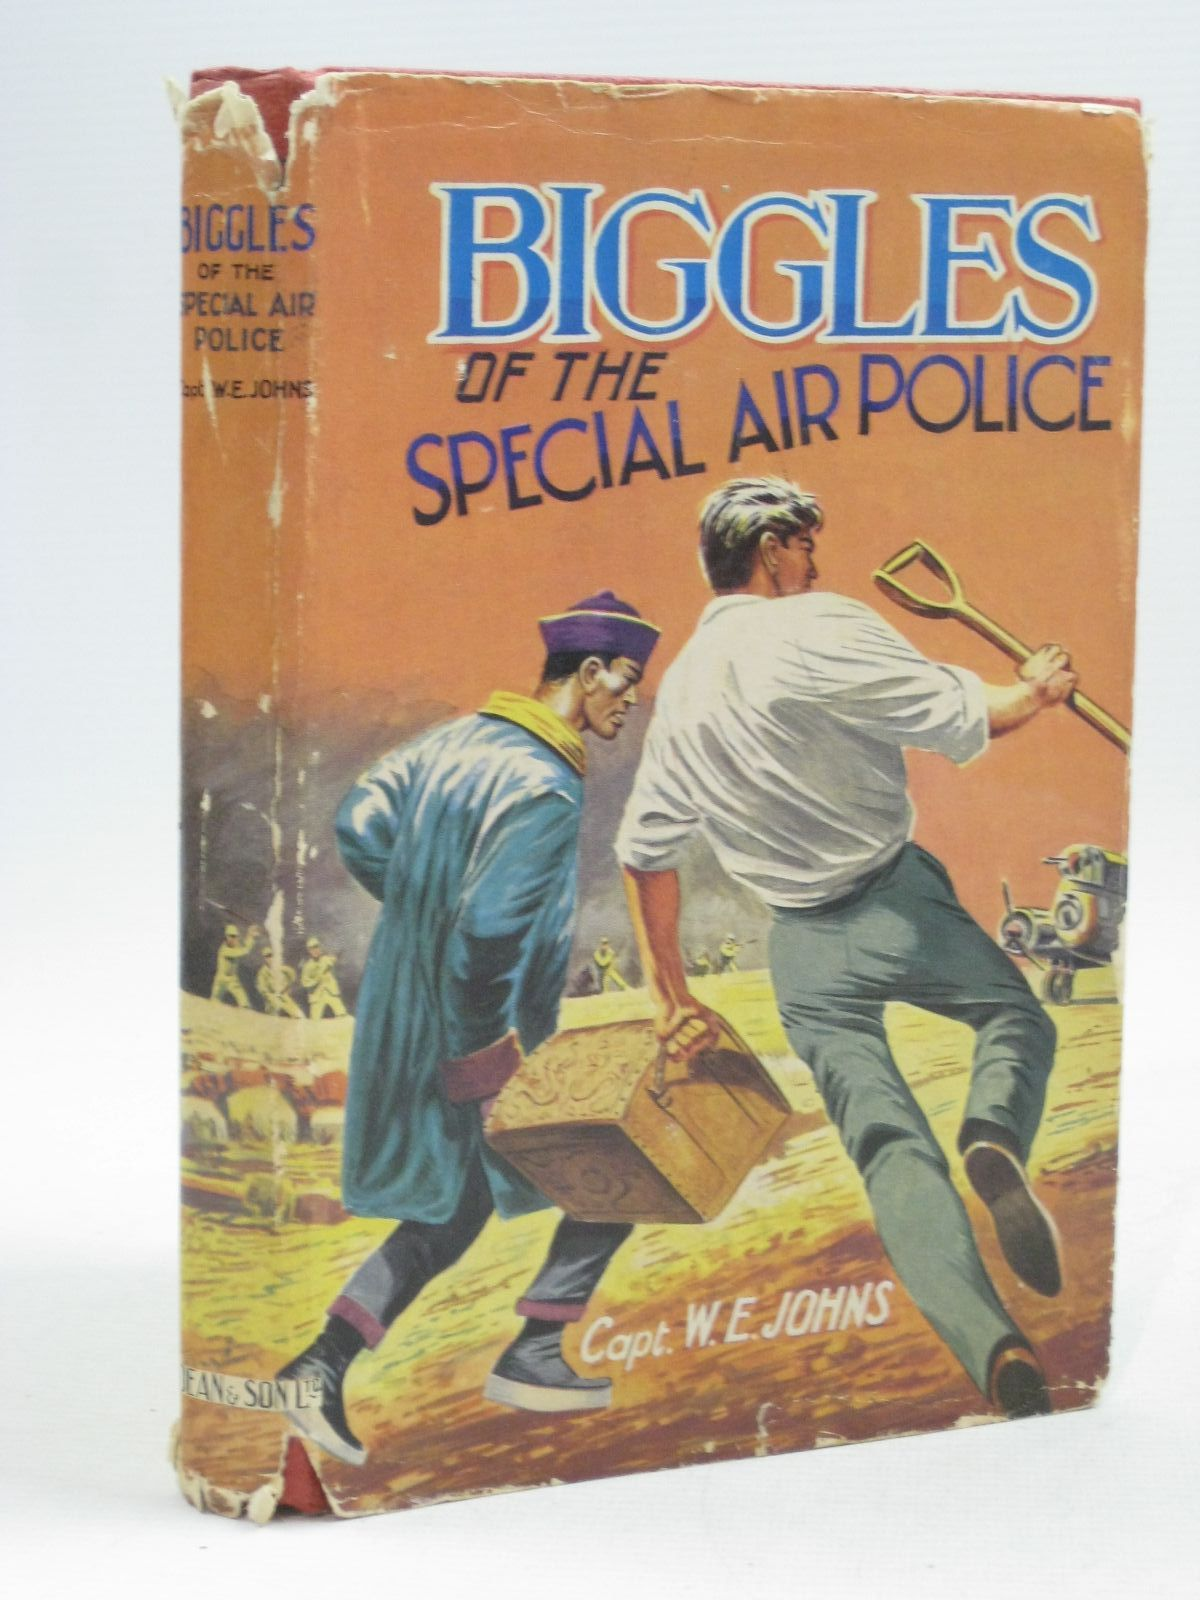 Photo of BIGGLES OF THE SPECIAL AIR POLICE written by Johns, W.E. published by Dean & Son Ltd. (STOCK CODE: 1404385)  for sale by Stella & Rose's Books